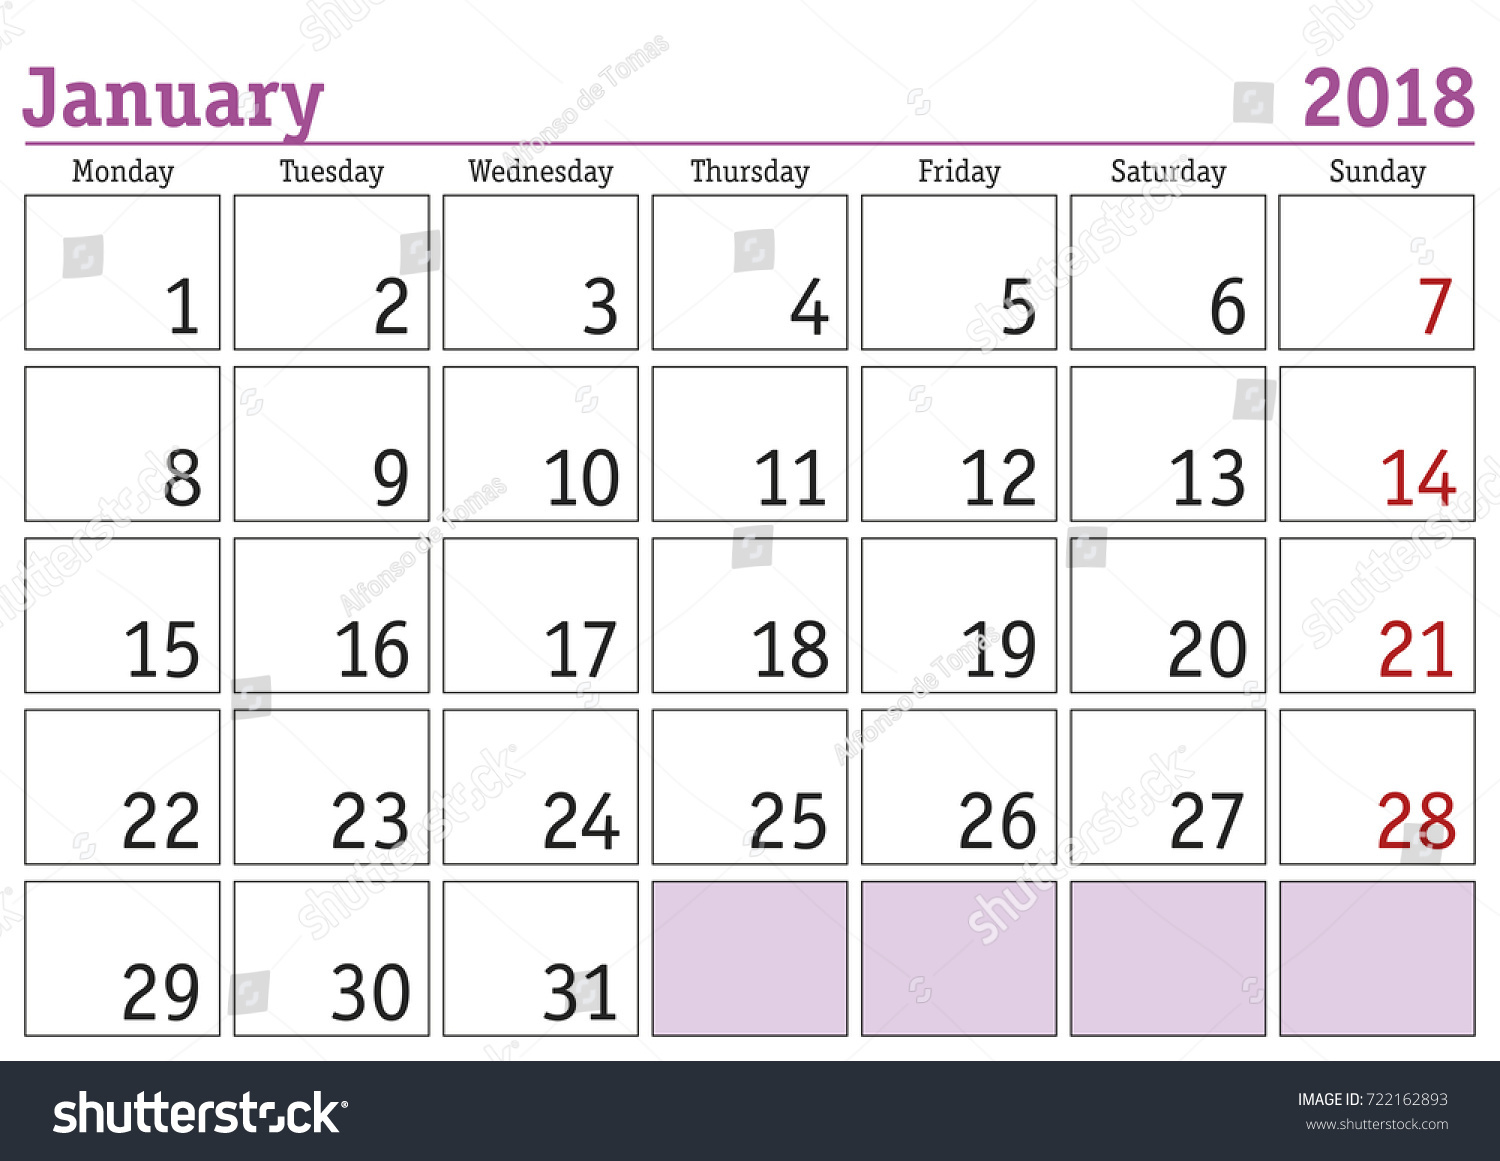 calendar 2018 simple digital calendar for january 2018 vector printable calendar monthly scheduler